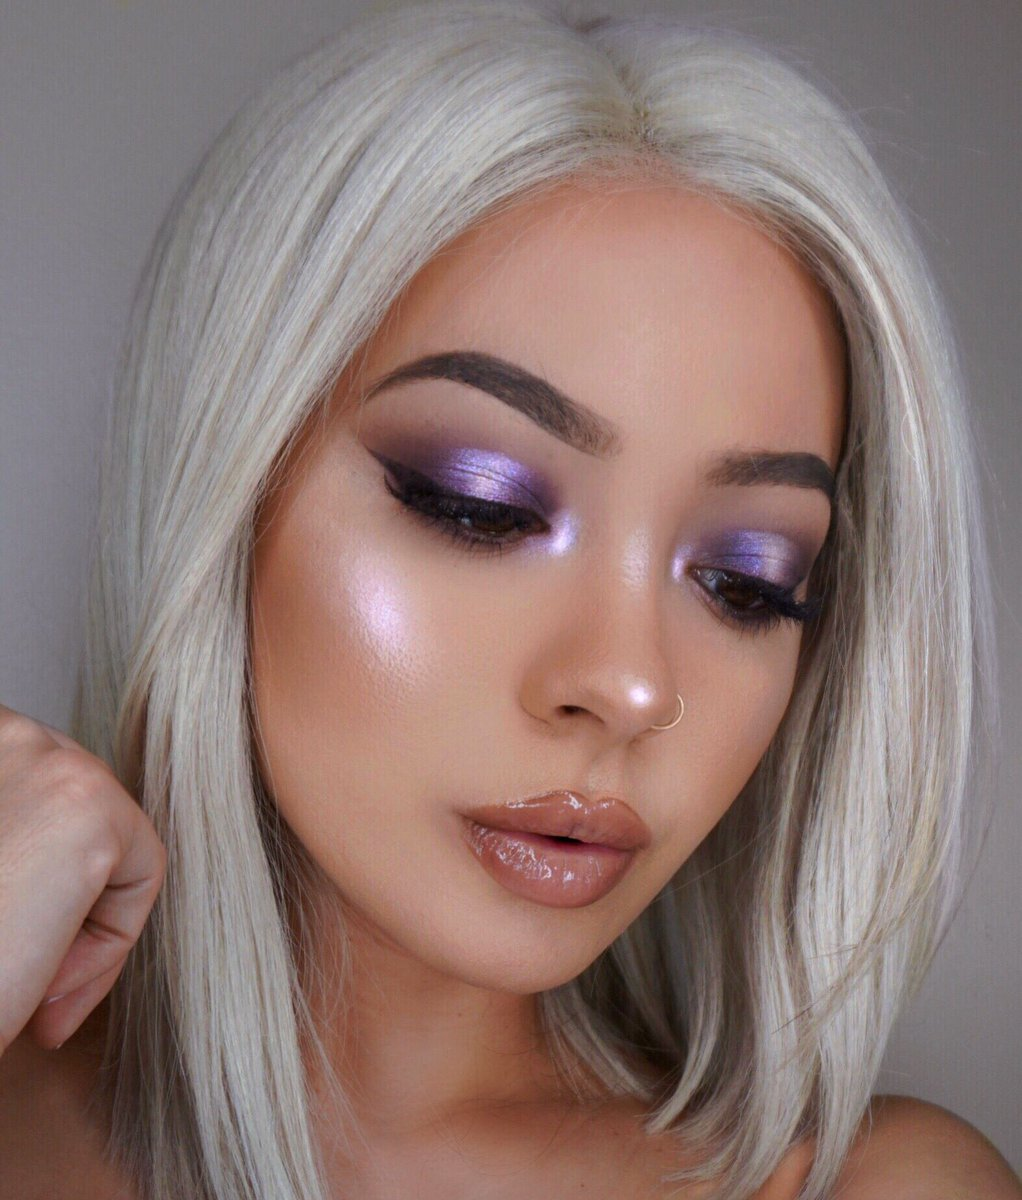 Ultra Violet Glow �� @maryliascott | Spend $50, get a FREE Youre a Gem or Feelin Fine Lip Trio! WEARING: Rocket Science Super Shock Highlight GRLFRN from Golden State of Mind palette